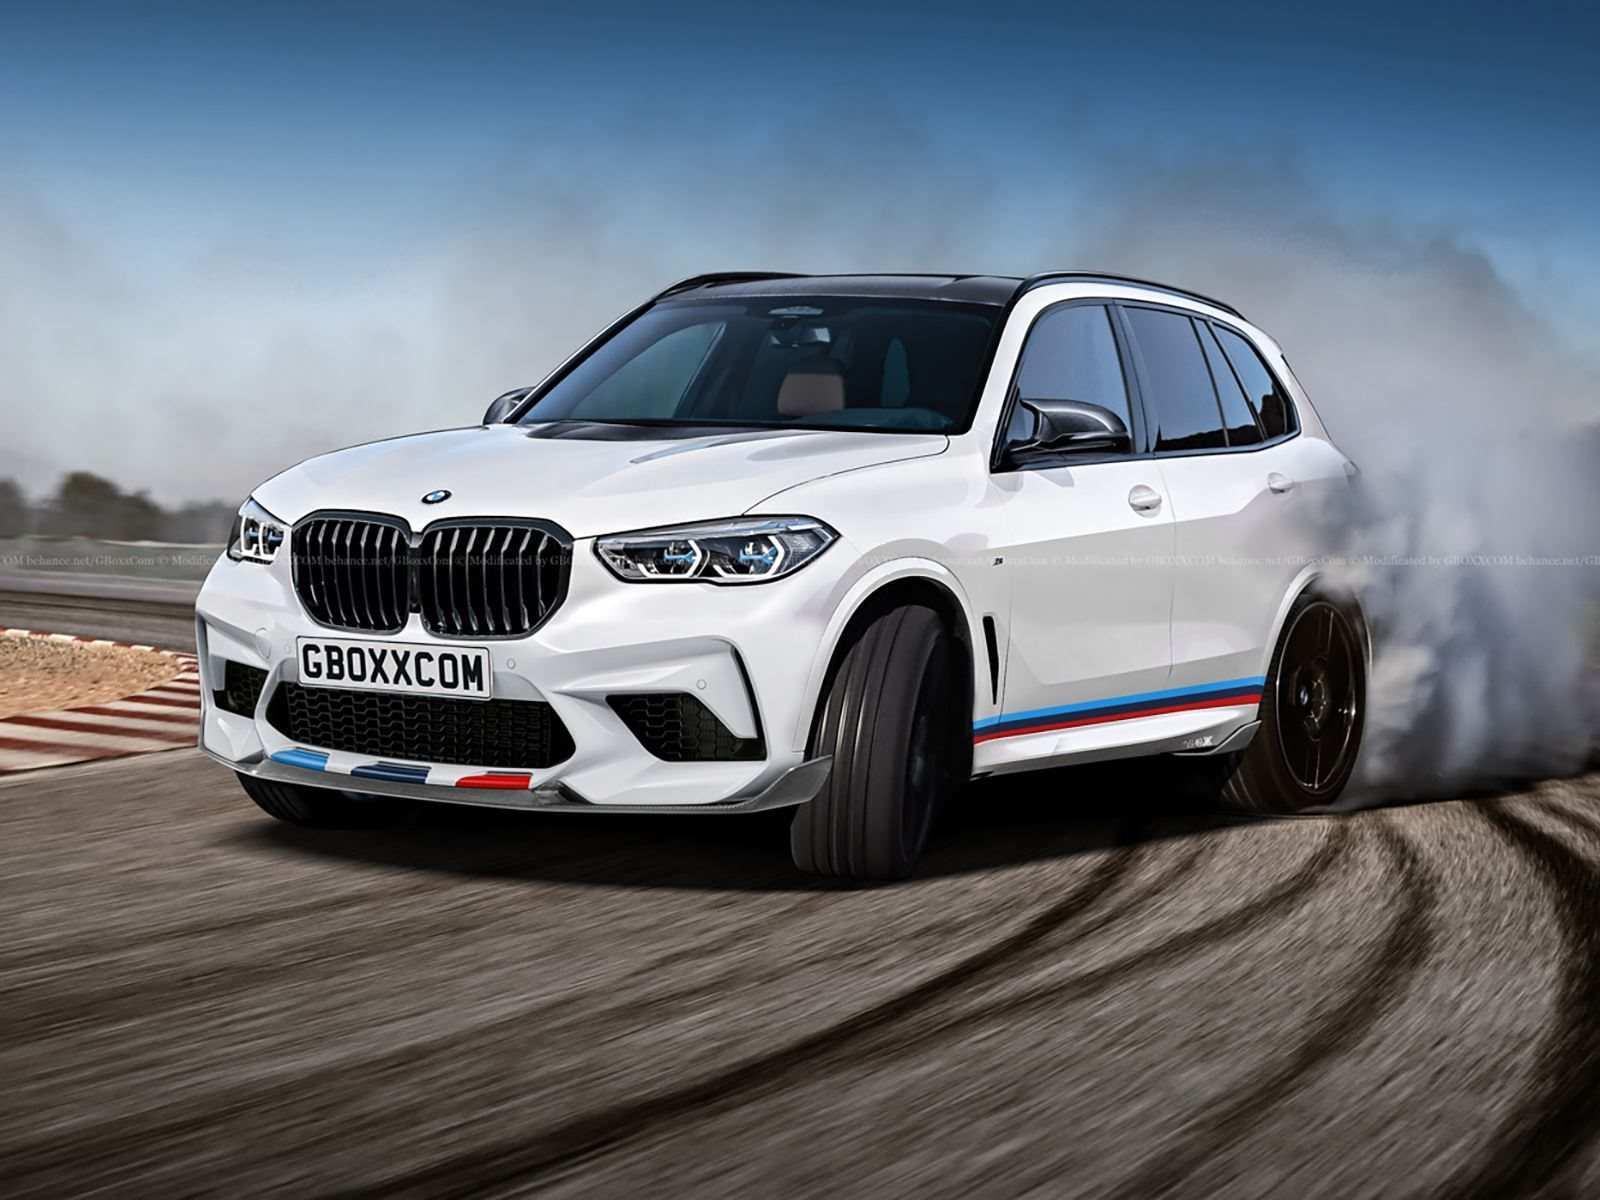 41 All New When Will 2020 BMW X5 Be Released Spesification for When Will 2020 BMW X5 Be Released